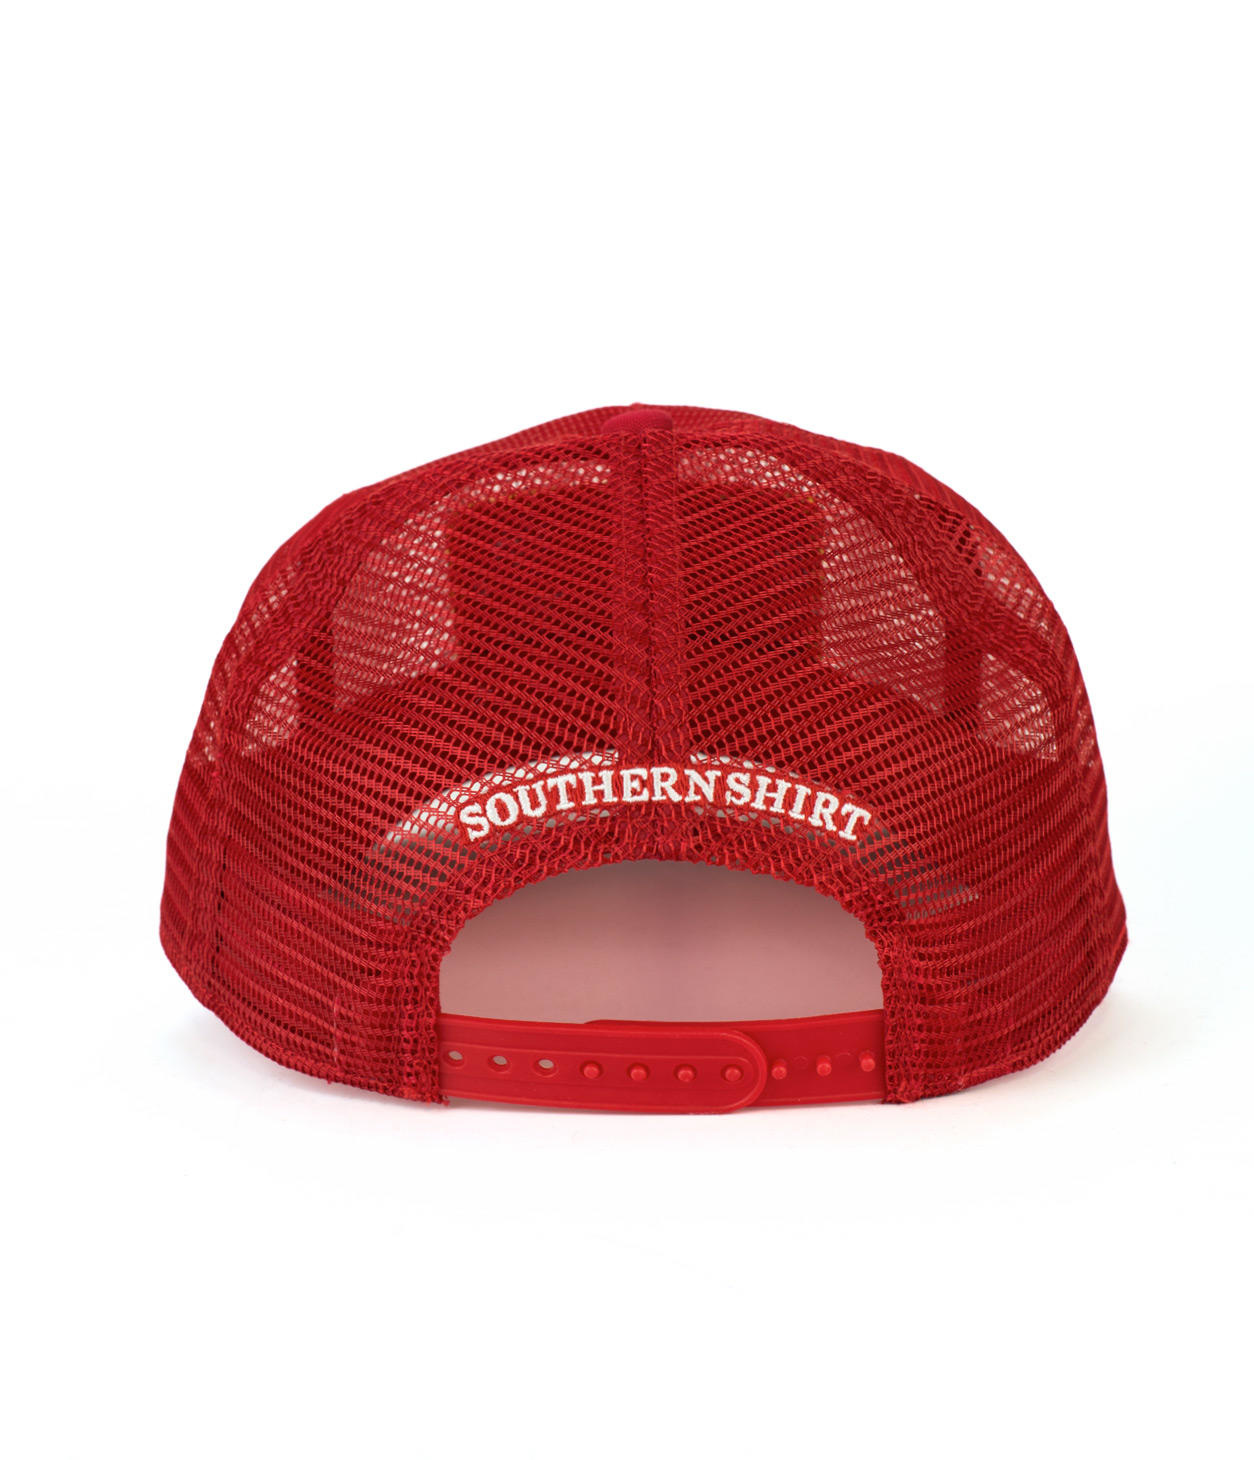 Southern Shirt USA All Mesh Hat